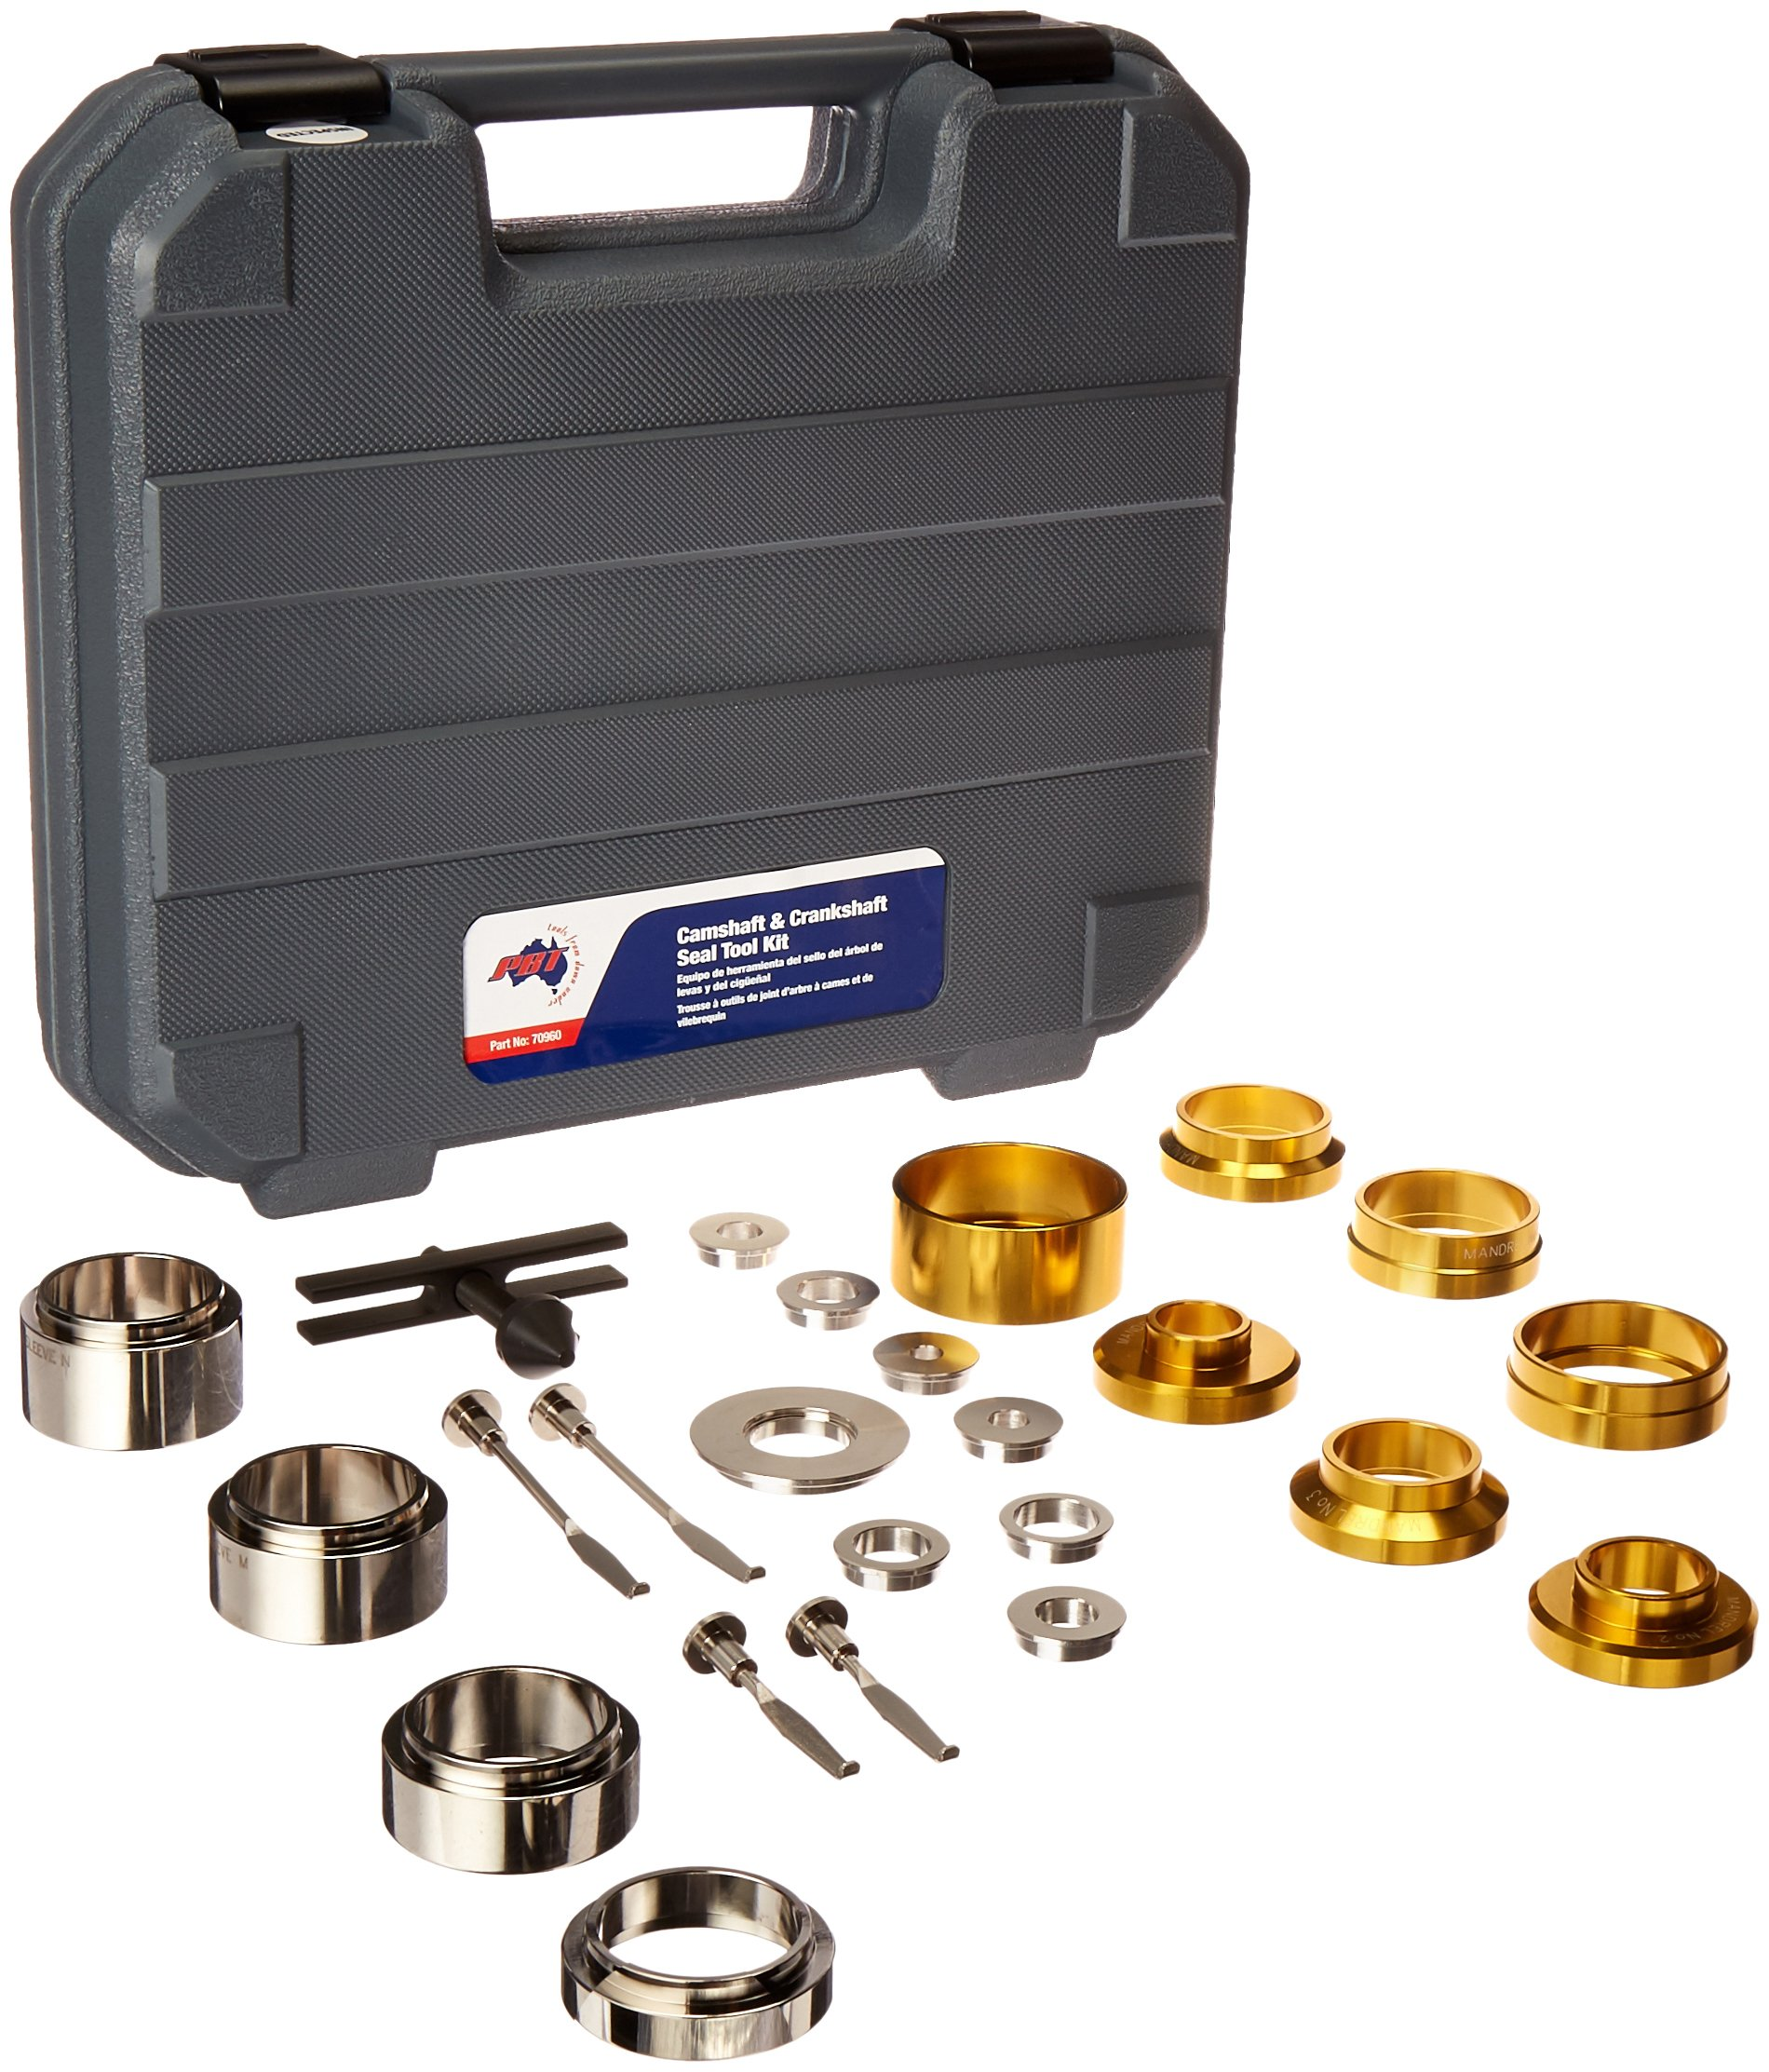 Private Brand Tools PBT70960 Crankshaft and Camshaft Seal Tool Kit by Private Brand Tools (Image #1)